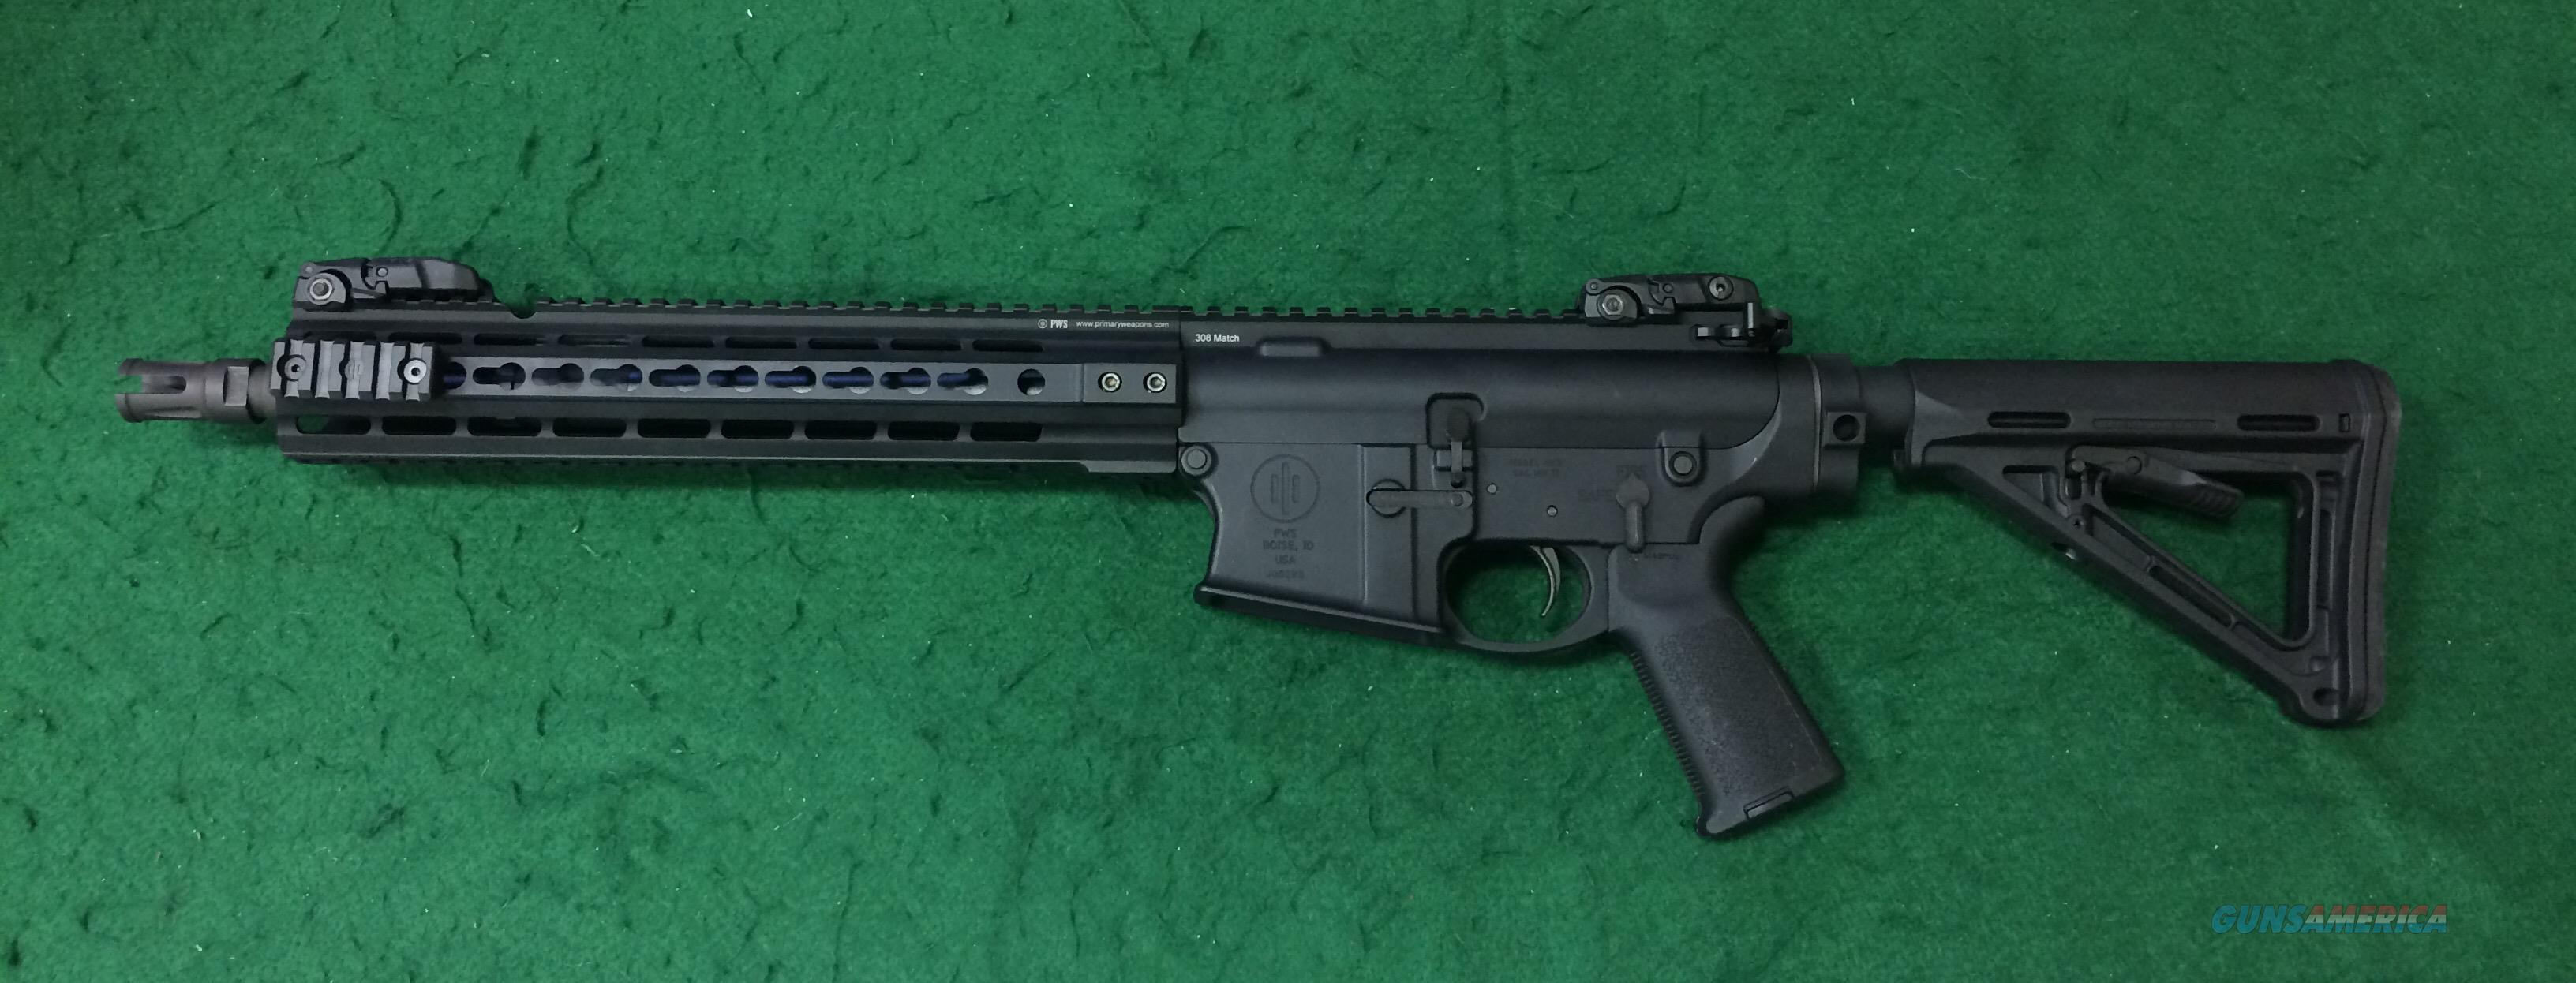 "PWS - MK2 .308 - 14"" SBR  Guns > Rifles > A Misc Rifles"